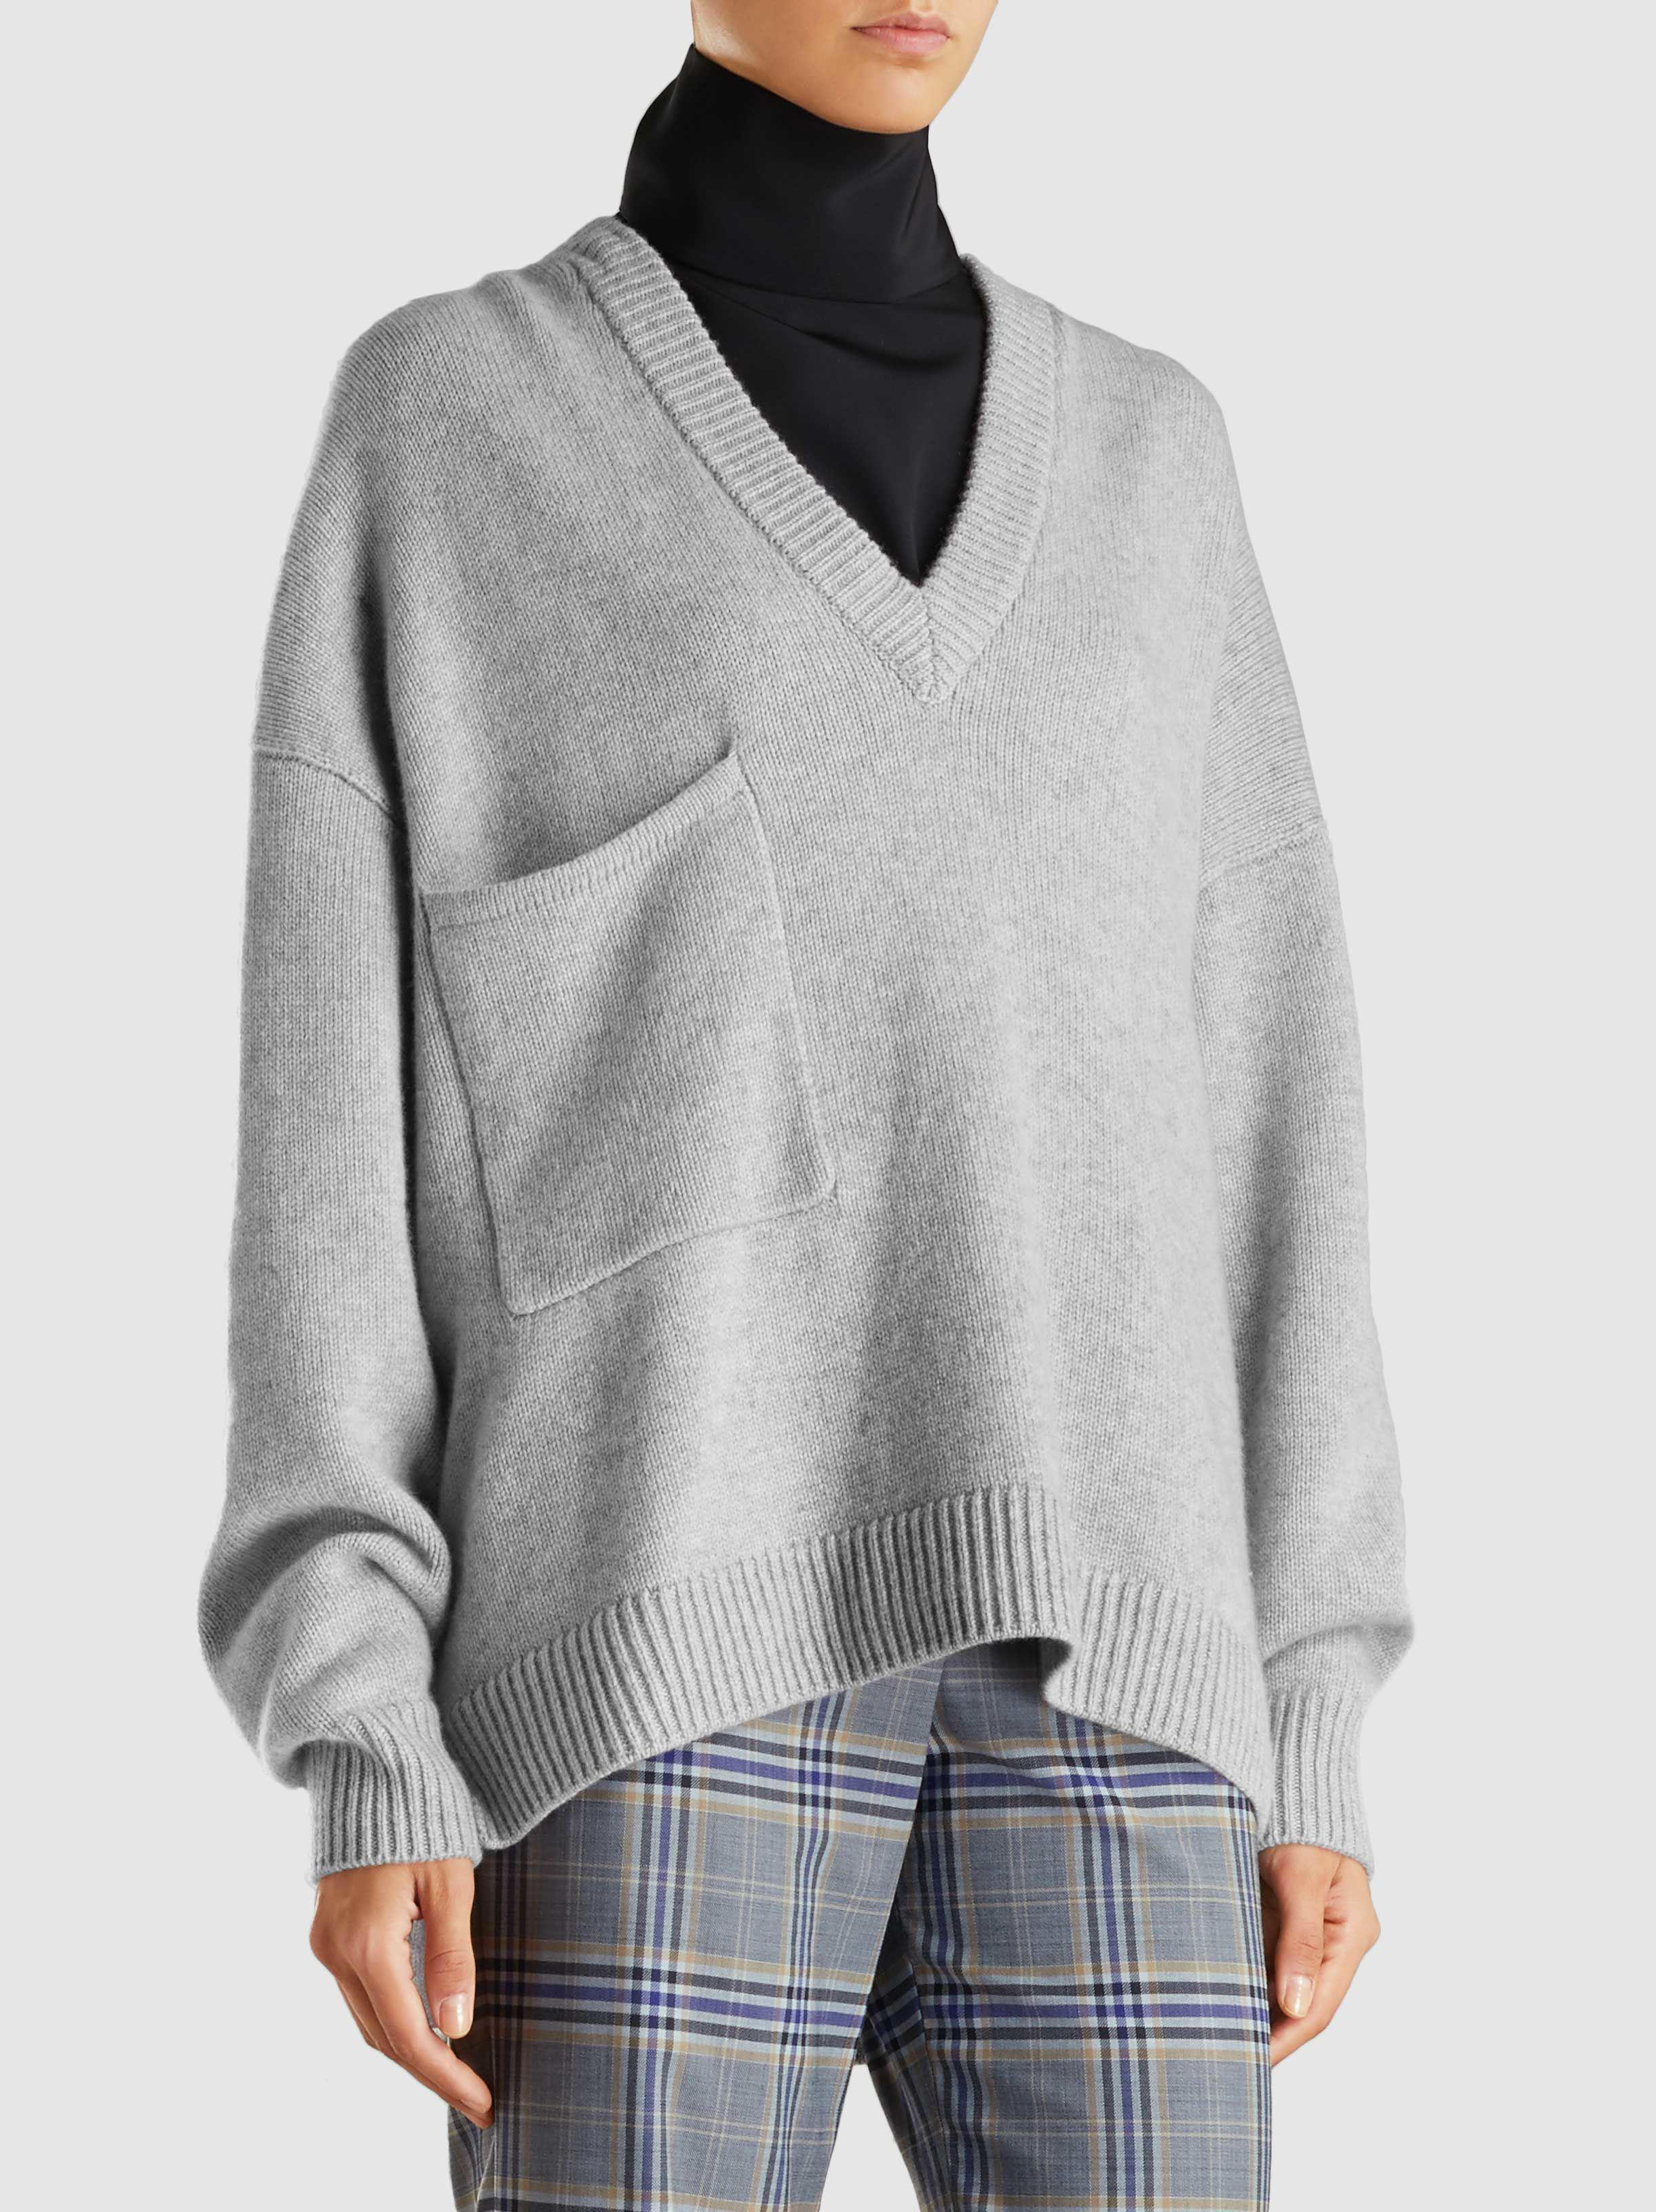 48a77217c33861 Tibi Deep V-neck Oversized Cashmere Sweater in Gray - Lyst